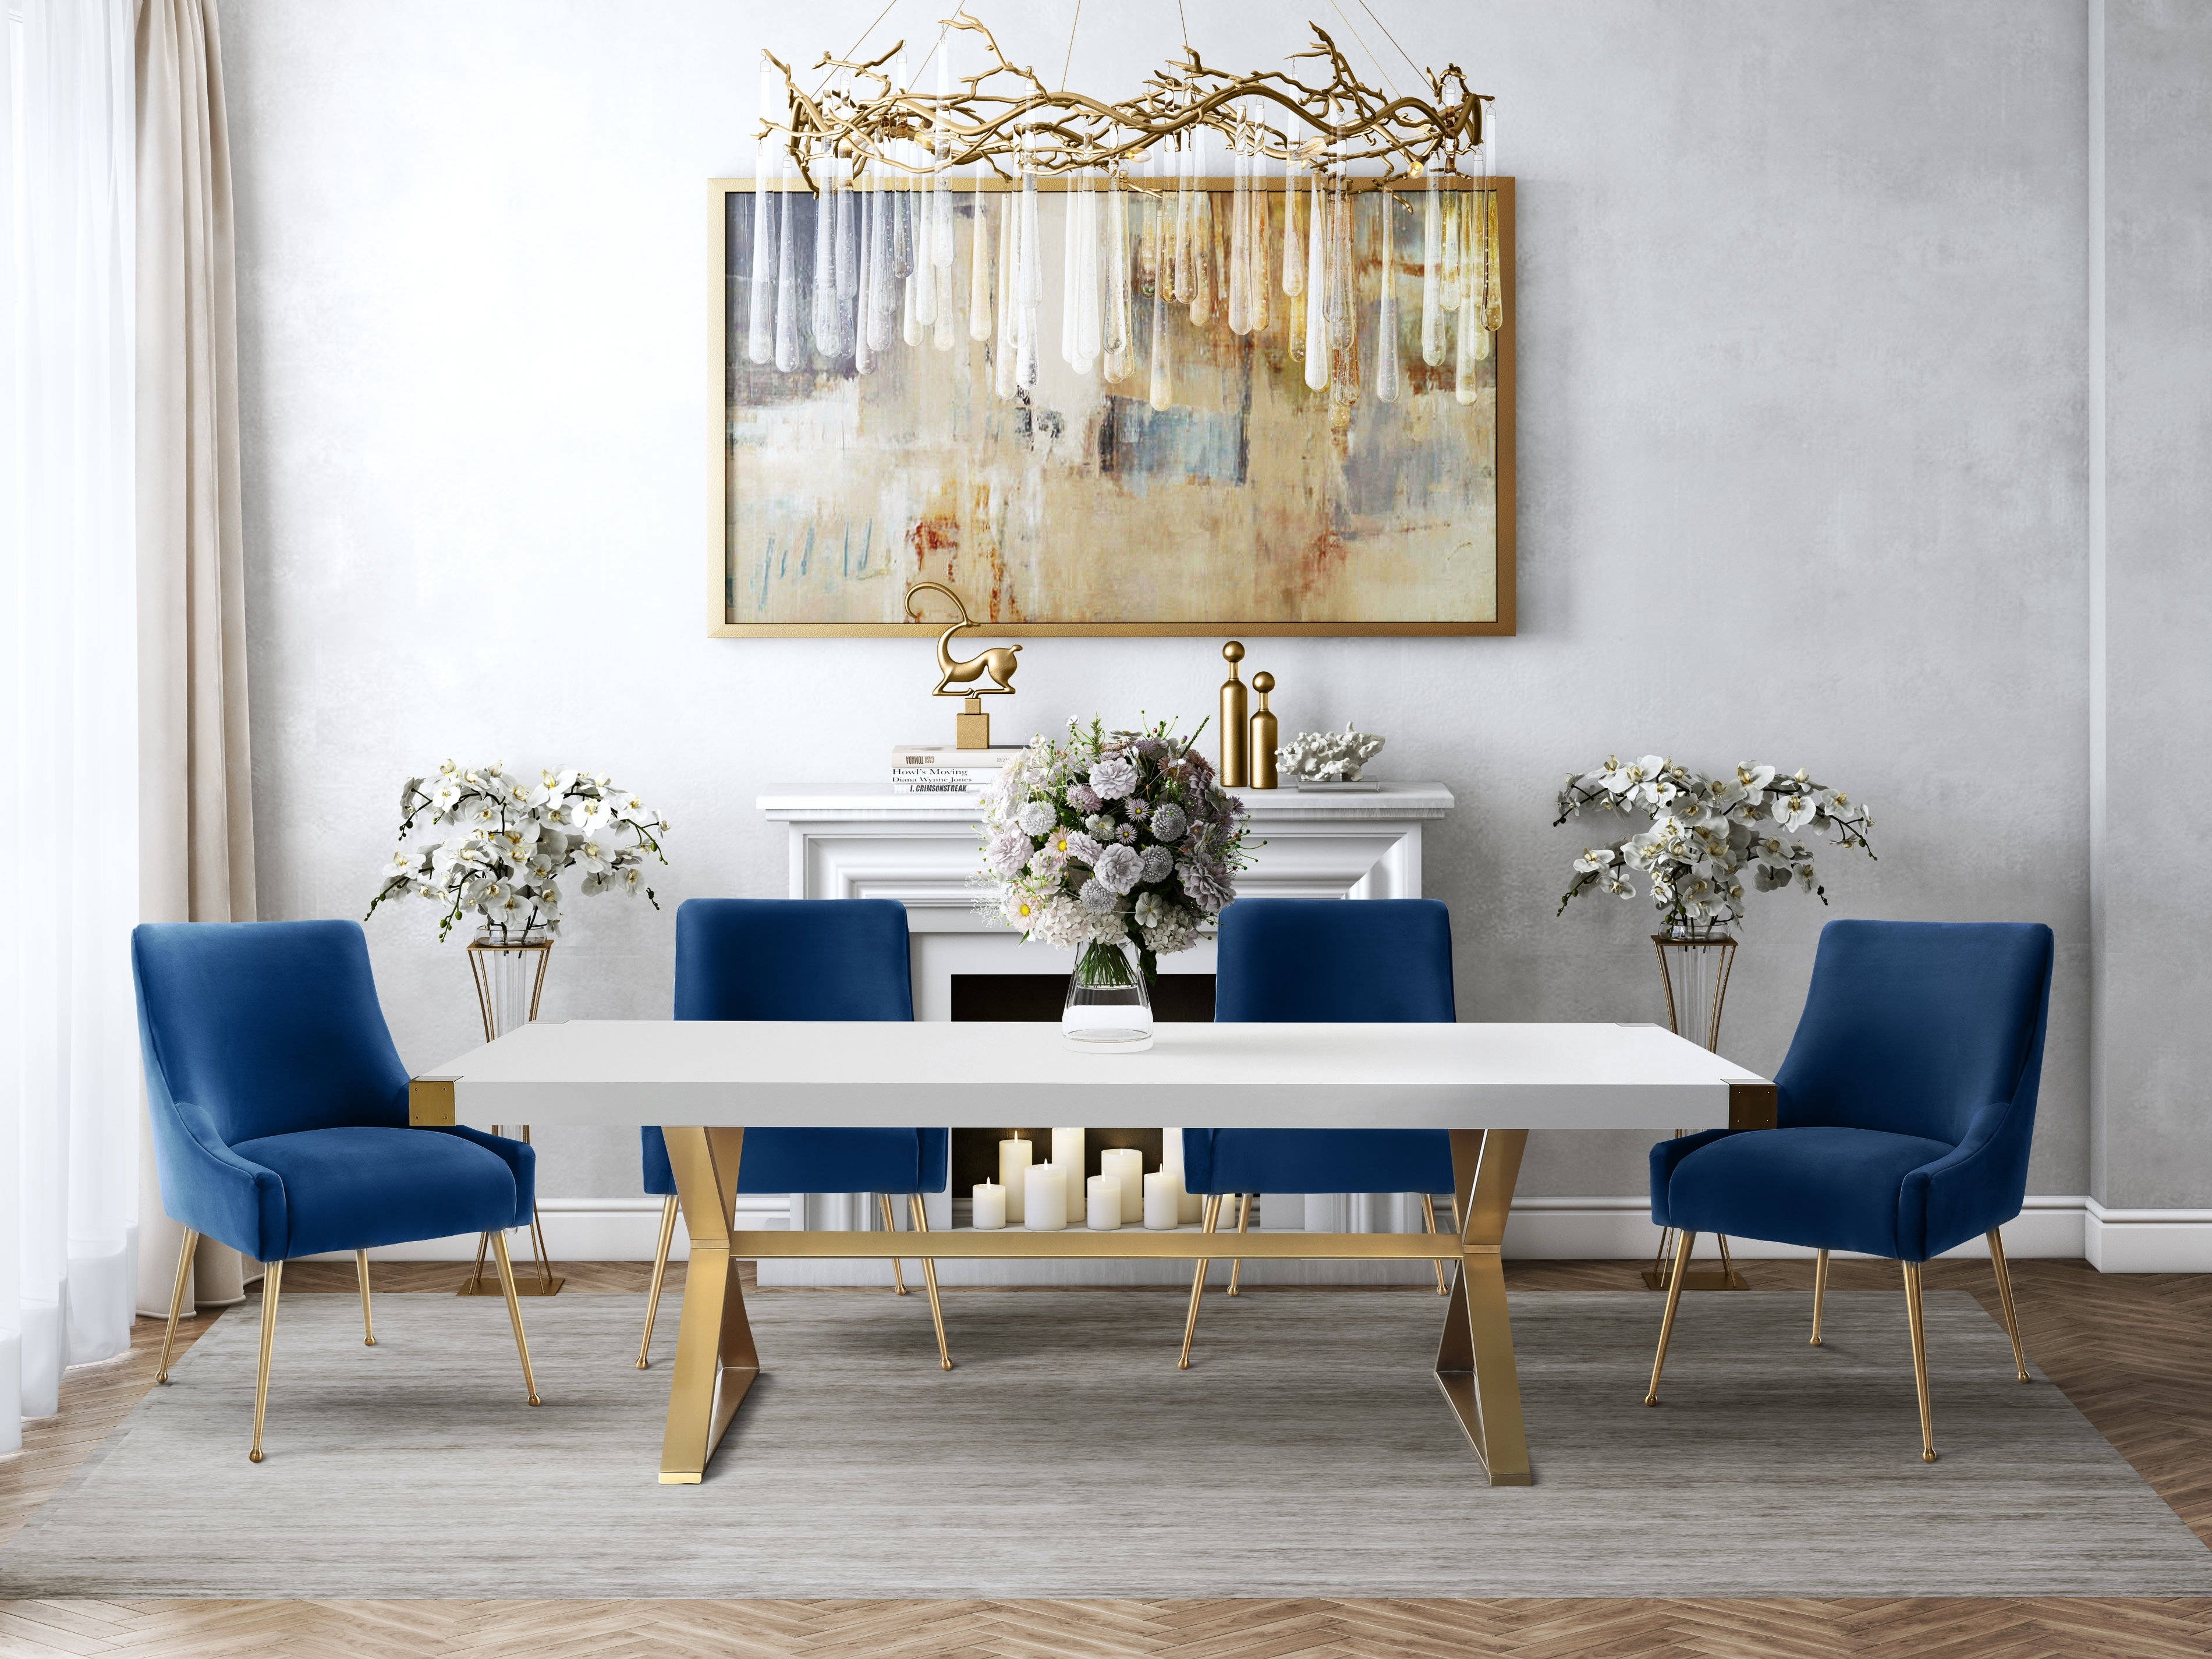 Tov Furniture Adeline 5Pc Dining Room Set With Navy Chairs   The Pertaining To Adeline 3 Piece Sectionals (Image 25 of 25)